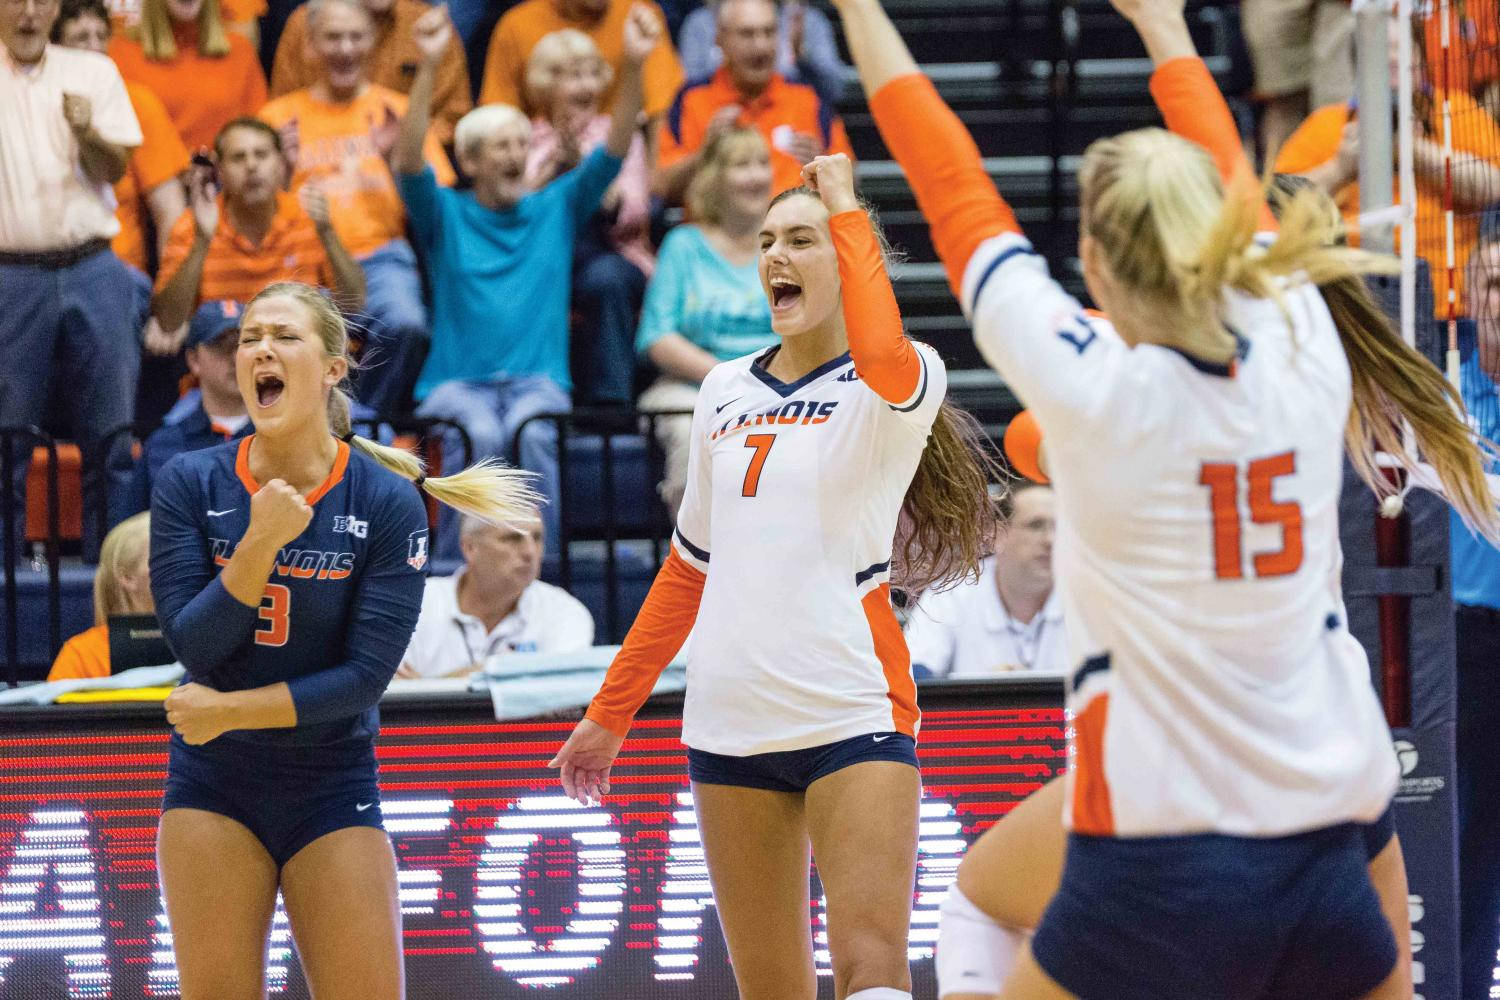 Illinois outside hitter Jacqueline Quade (7) and defensive specialist Brandi Donnelly (3) celebrate during the match against Stanford at Huff Hall on Sept. 8.